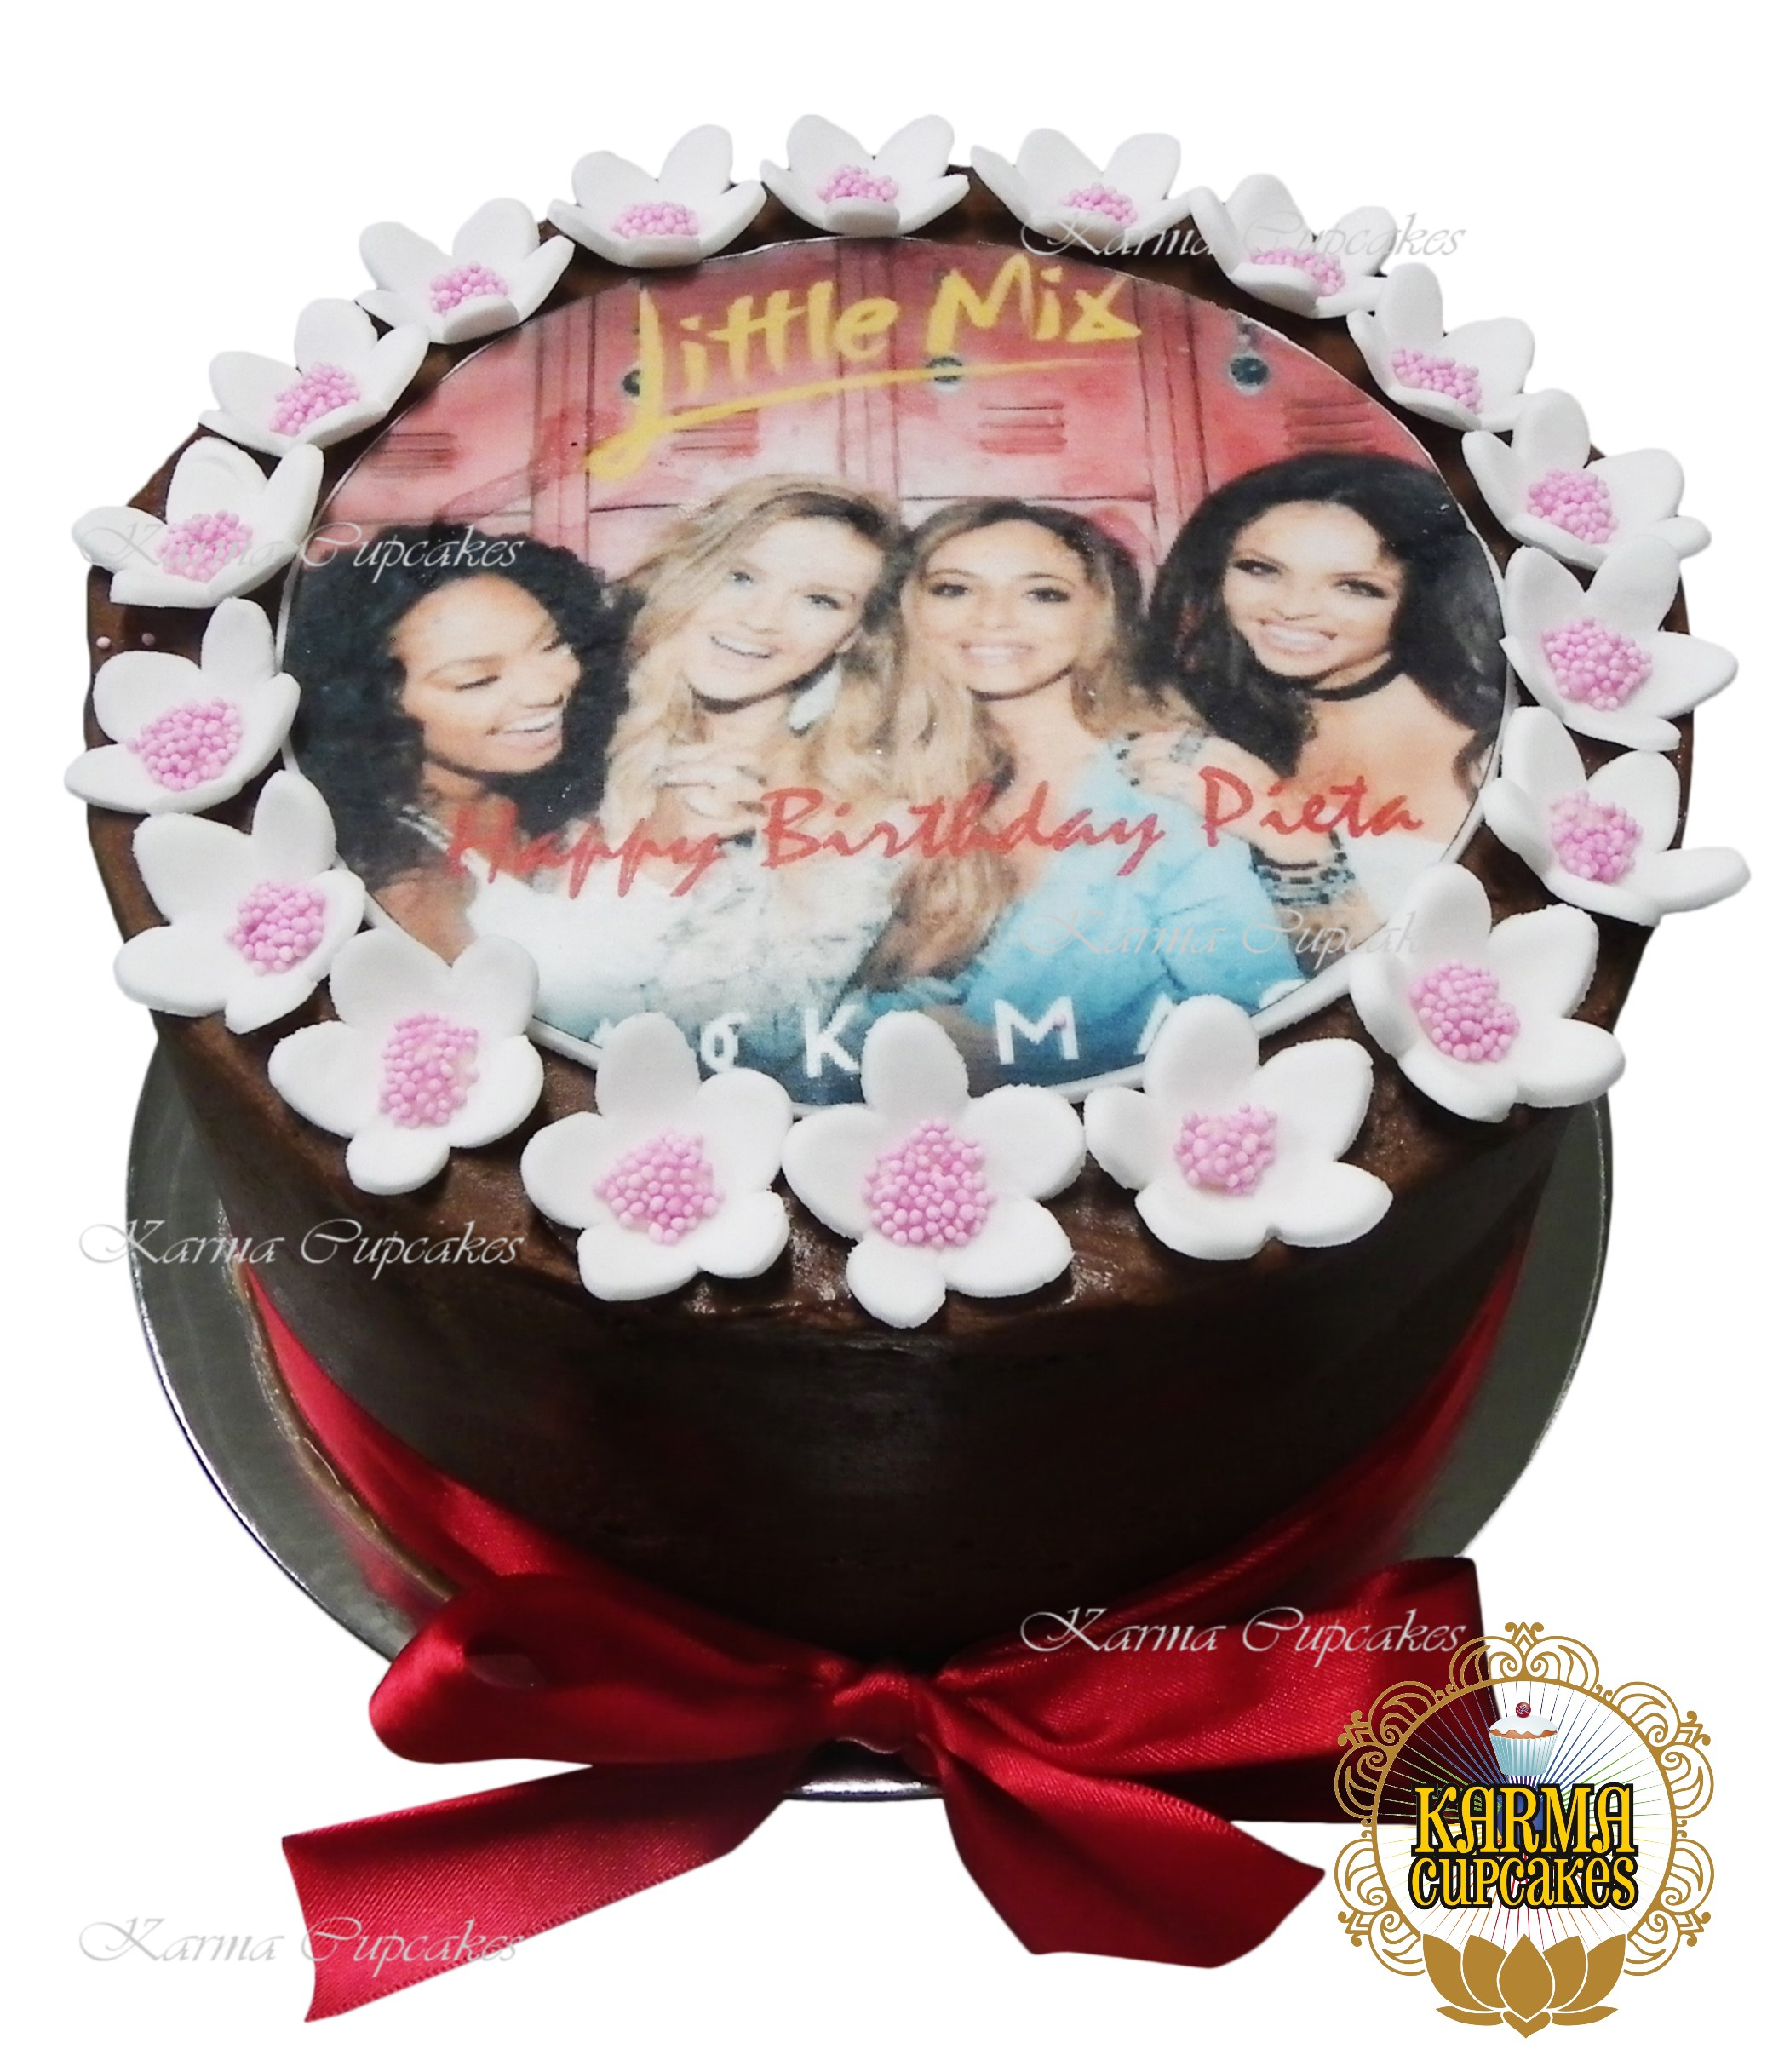 Remarkable 8 Inch Buttercream Iced Cake With Edible Image And Sugar Flowers Personalised Birthday Cards Sponlily Jamesorg